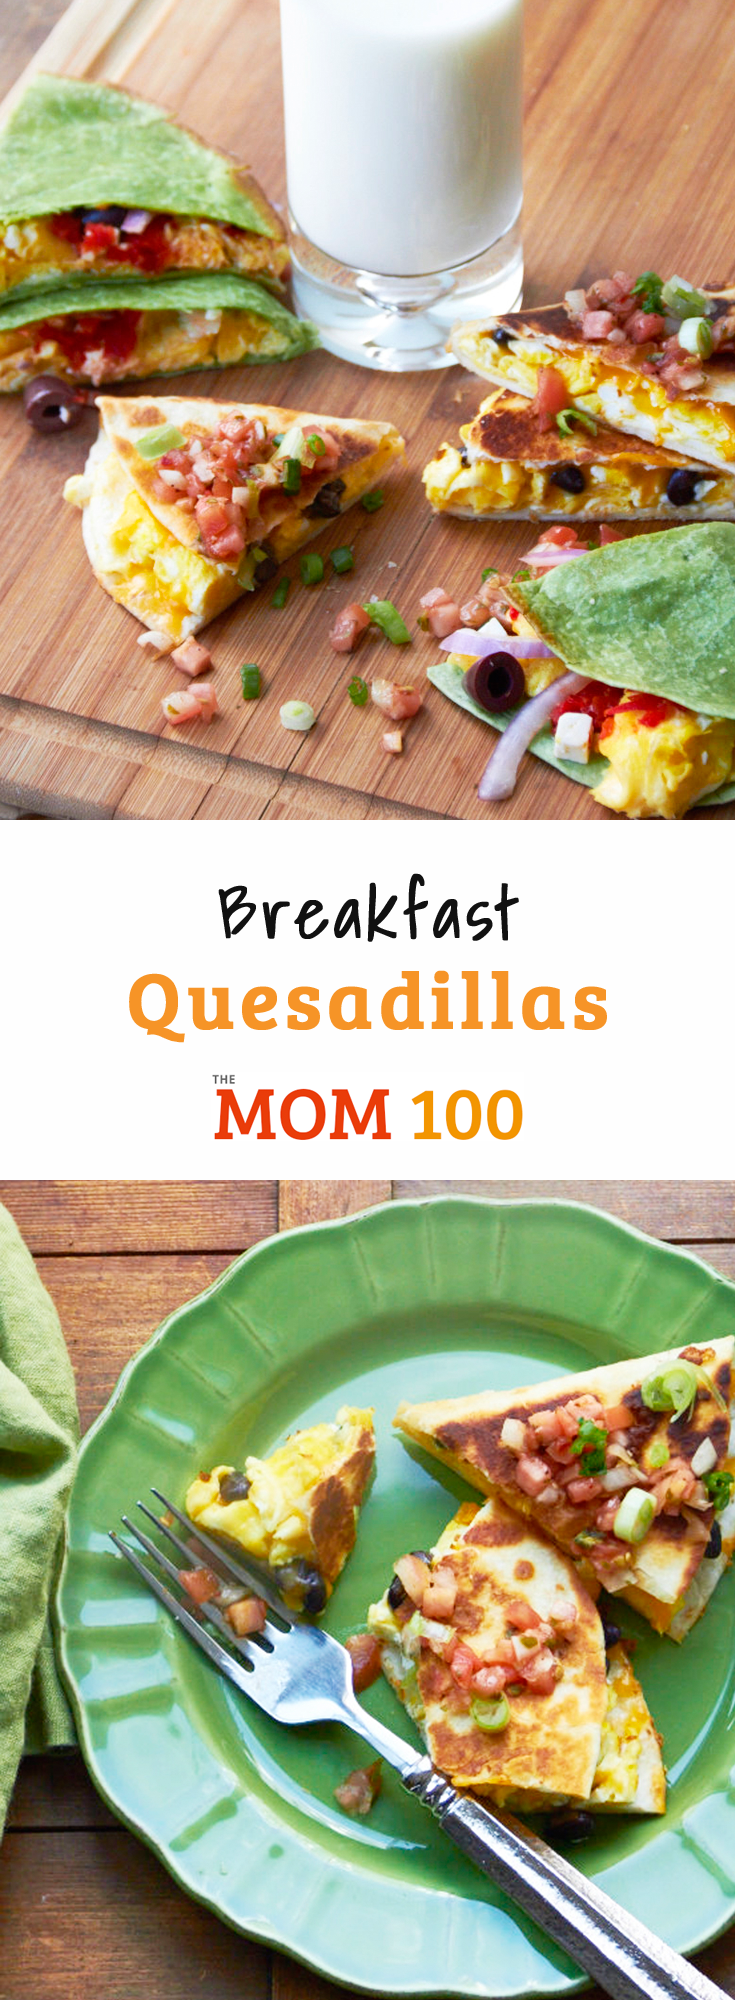 Best Breakfast Quesadillas:  These are a very fine reason to get out of bed in the morning, and flexible so whatever\'s in the fridge works!